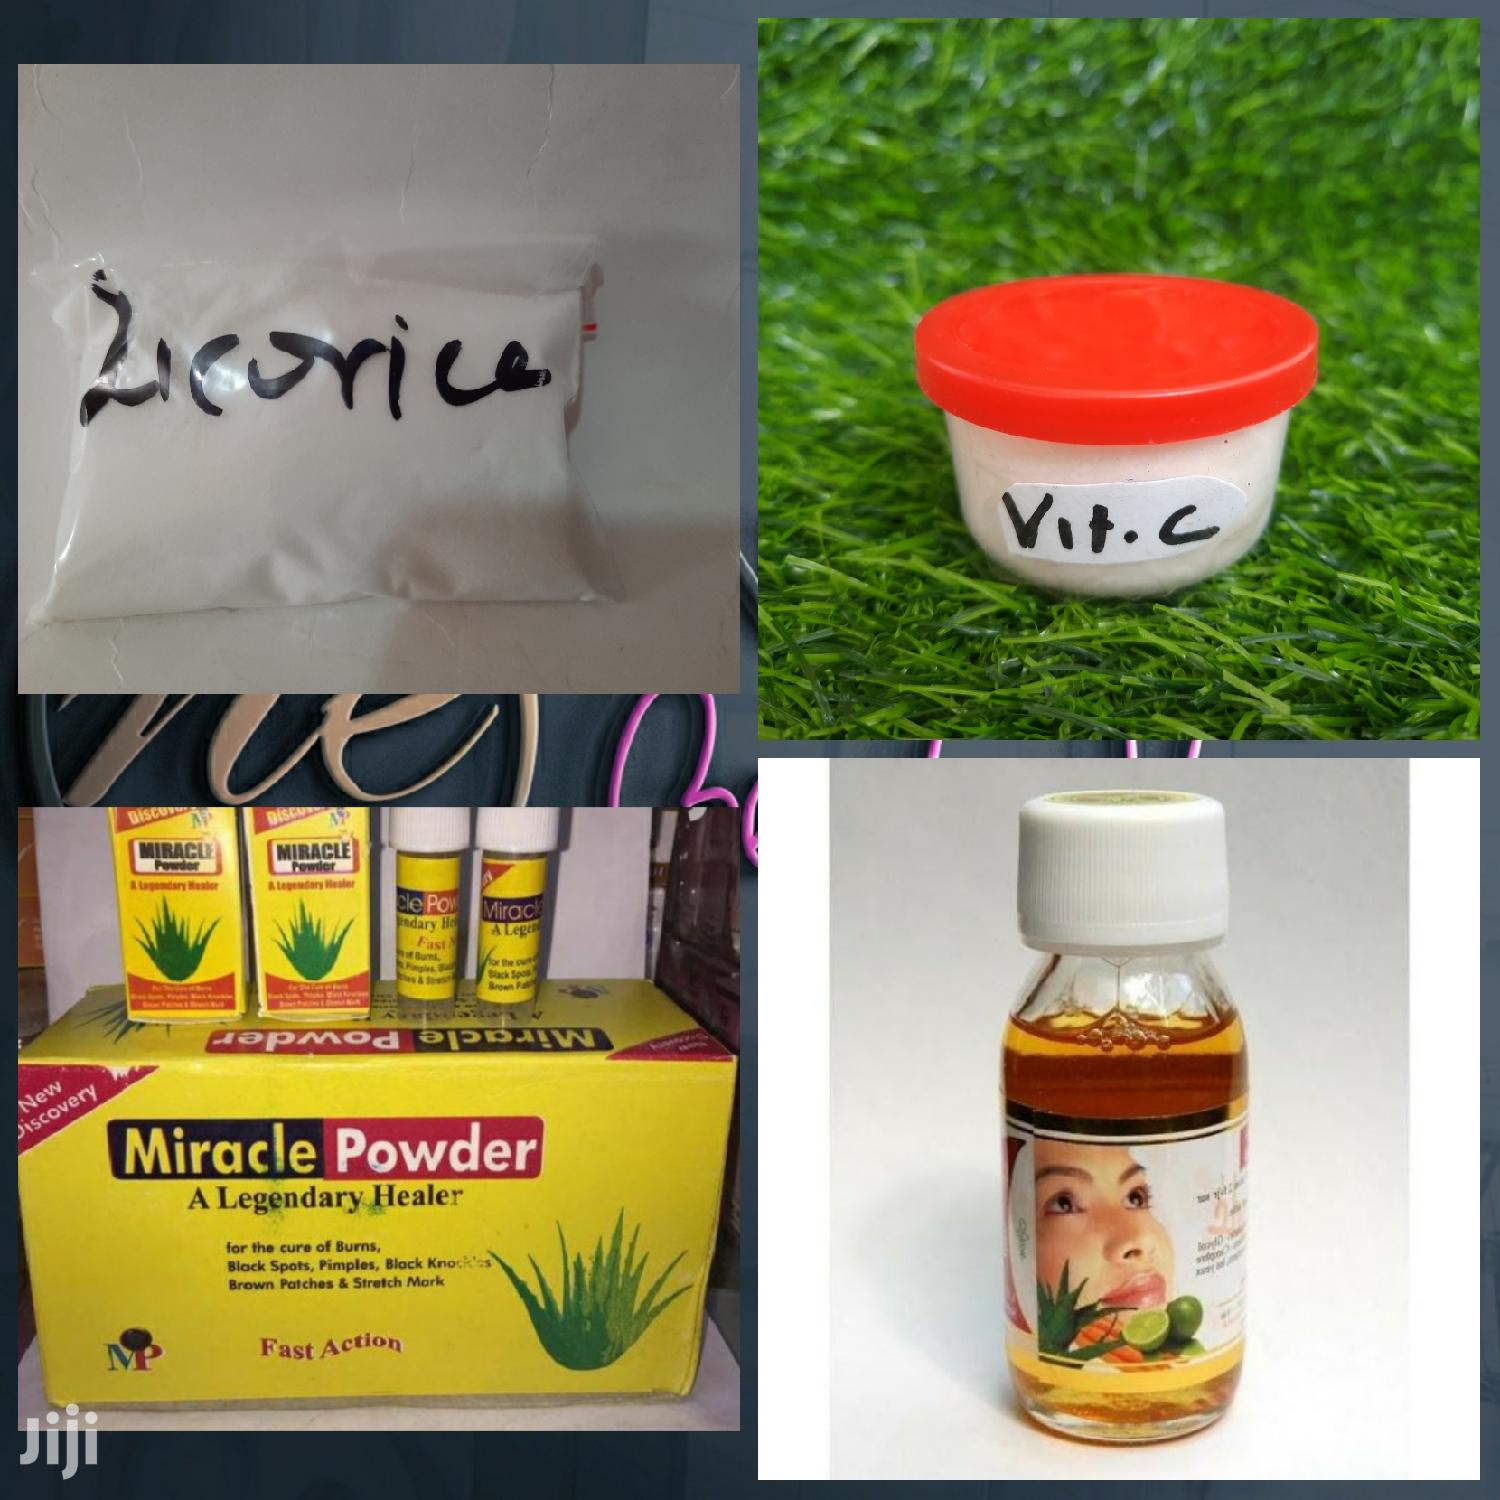 Archive: Licorice, Vitamin C Powder, Miracle Powder, Santarde Cleanse